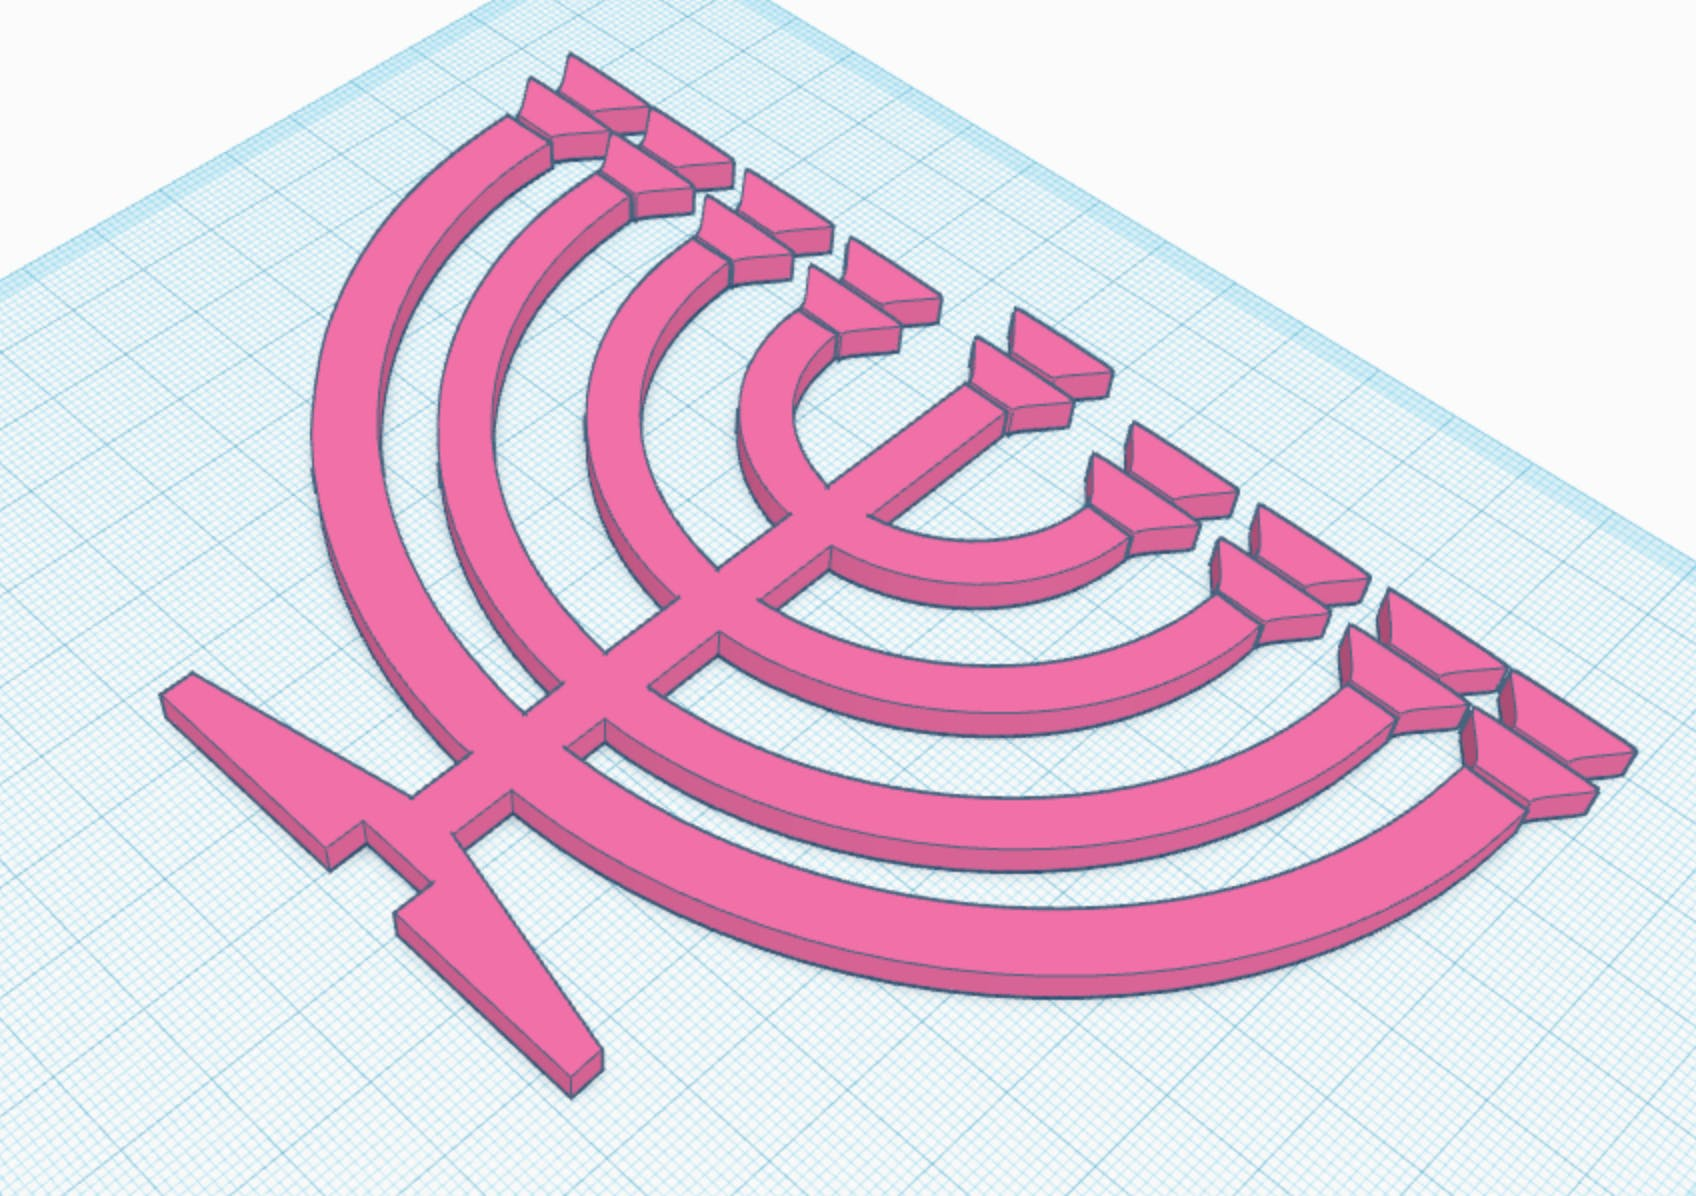 TinkerCAD Screenshot of the Hanukah menorah